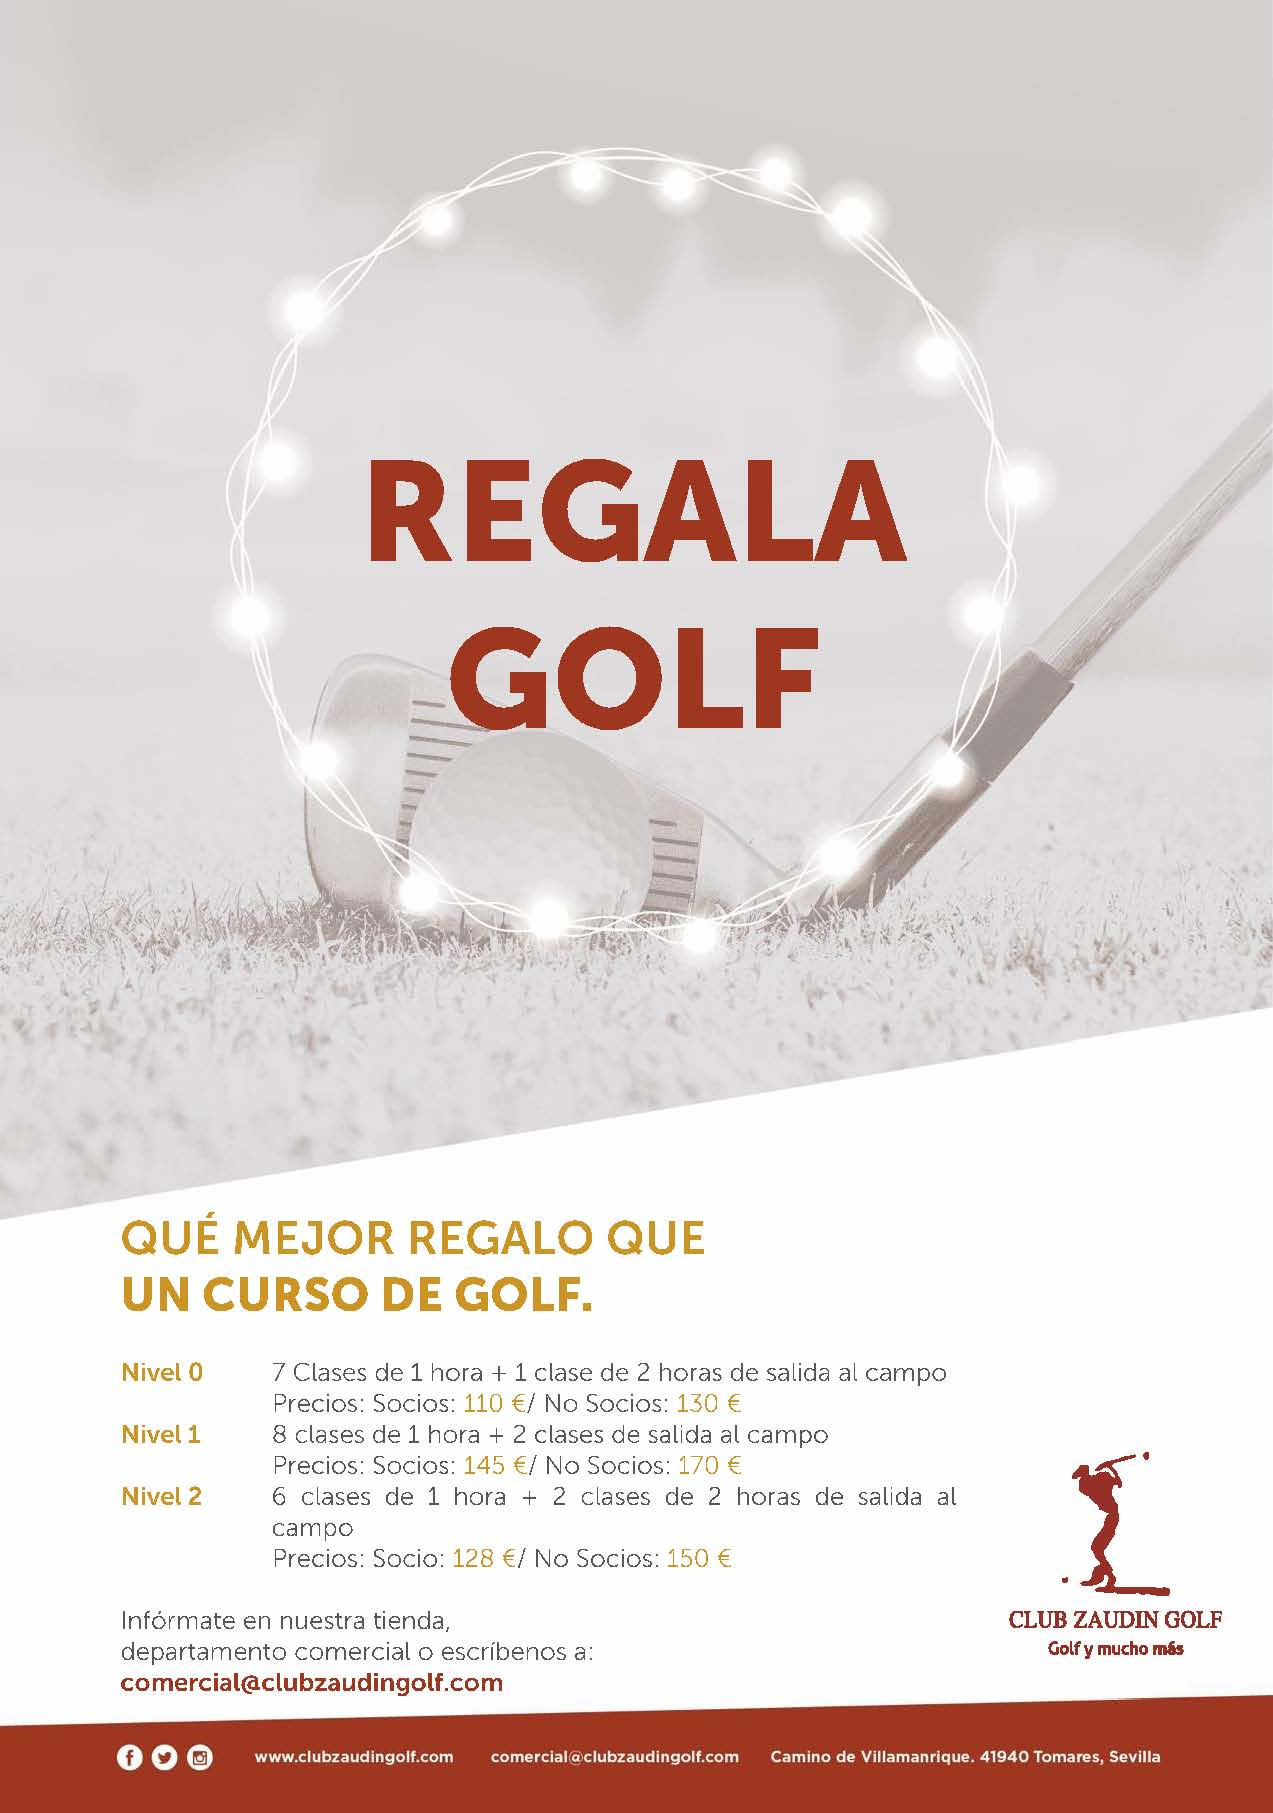 REGALA GOLF